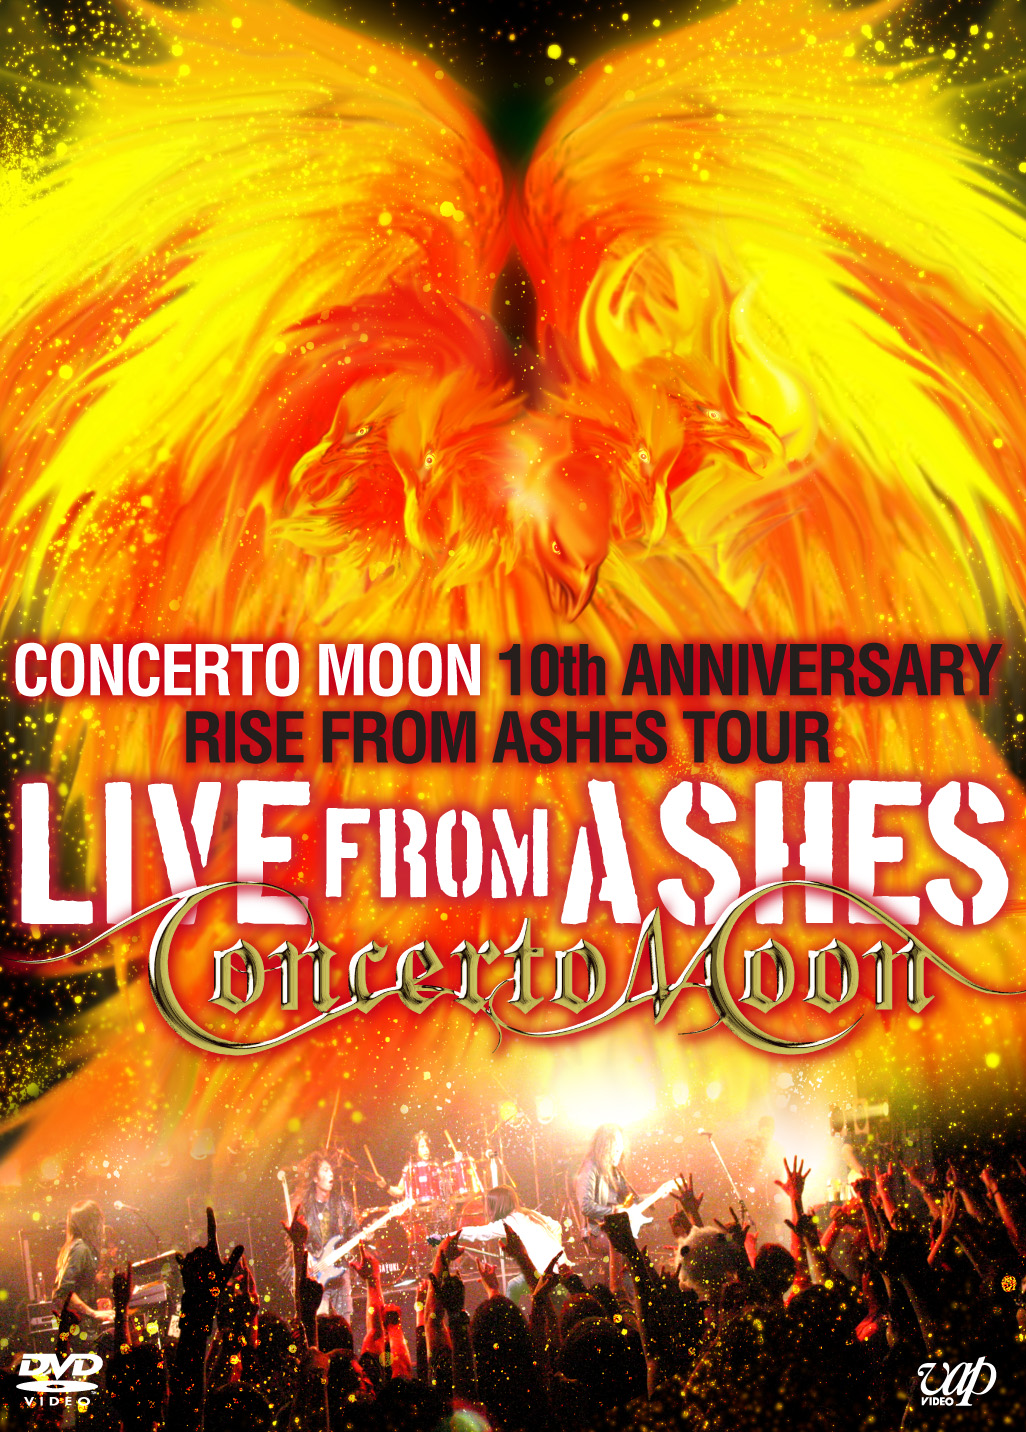 CONCERTO MOON - Live from Ashes - Concerto Moon 10th Anniversary Rise from Ashes Tour cover